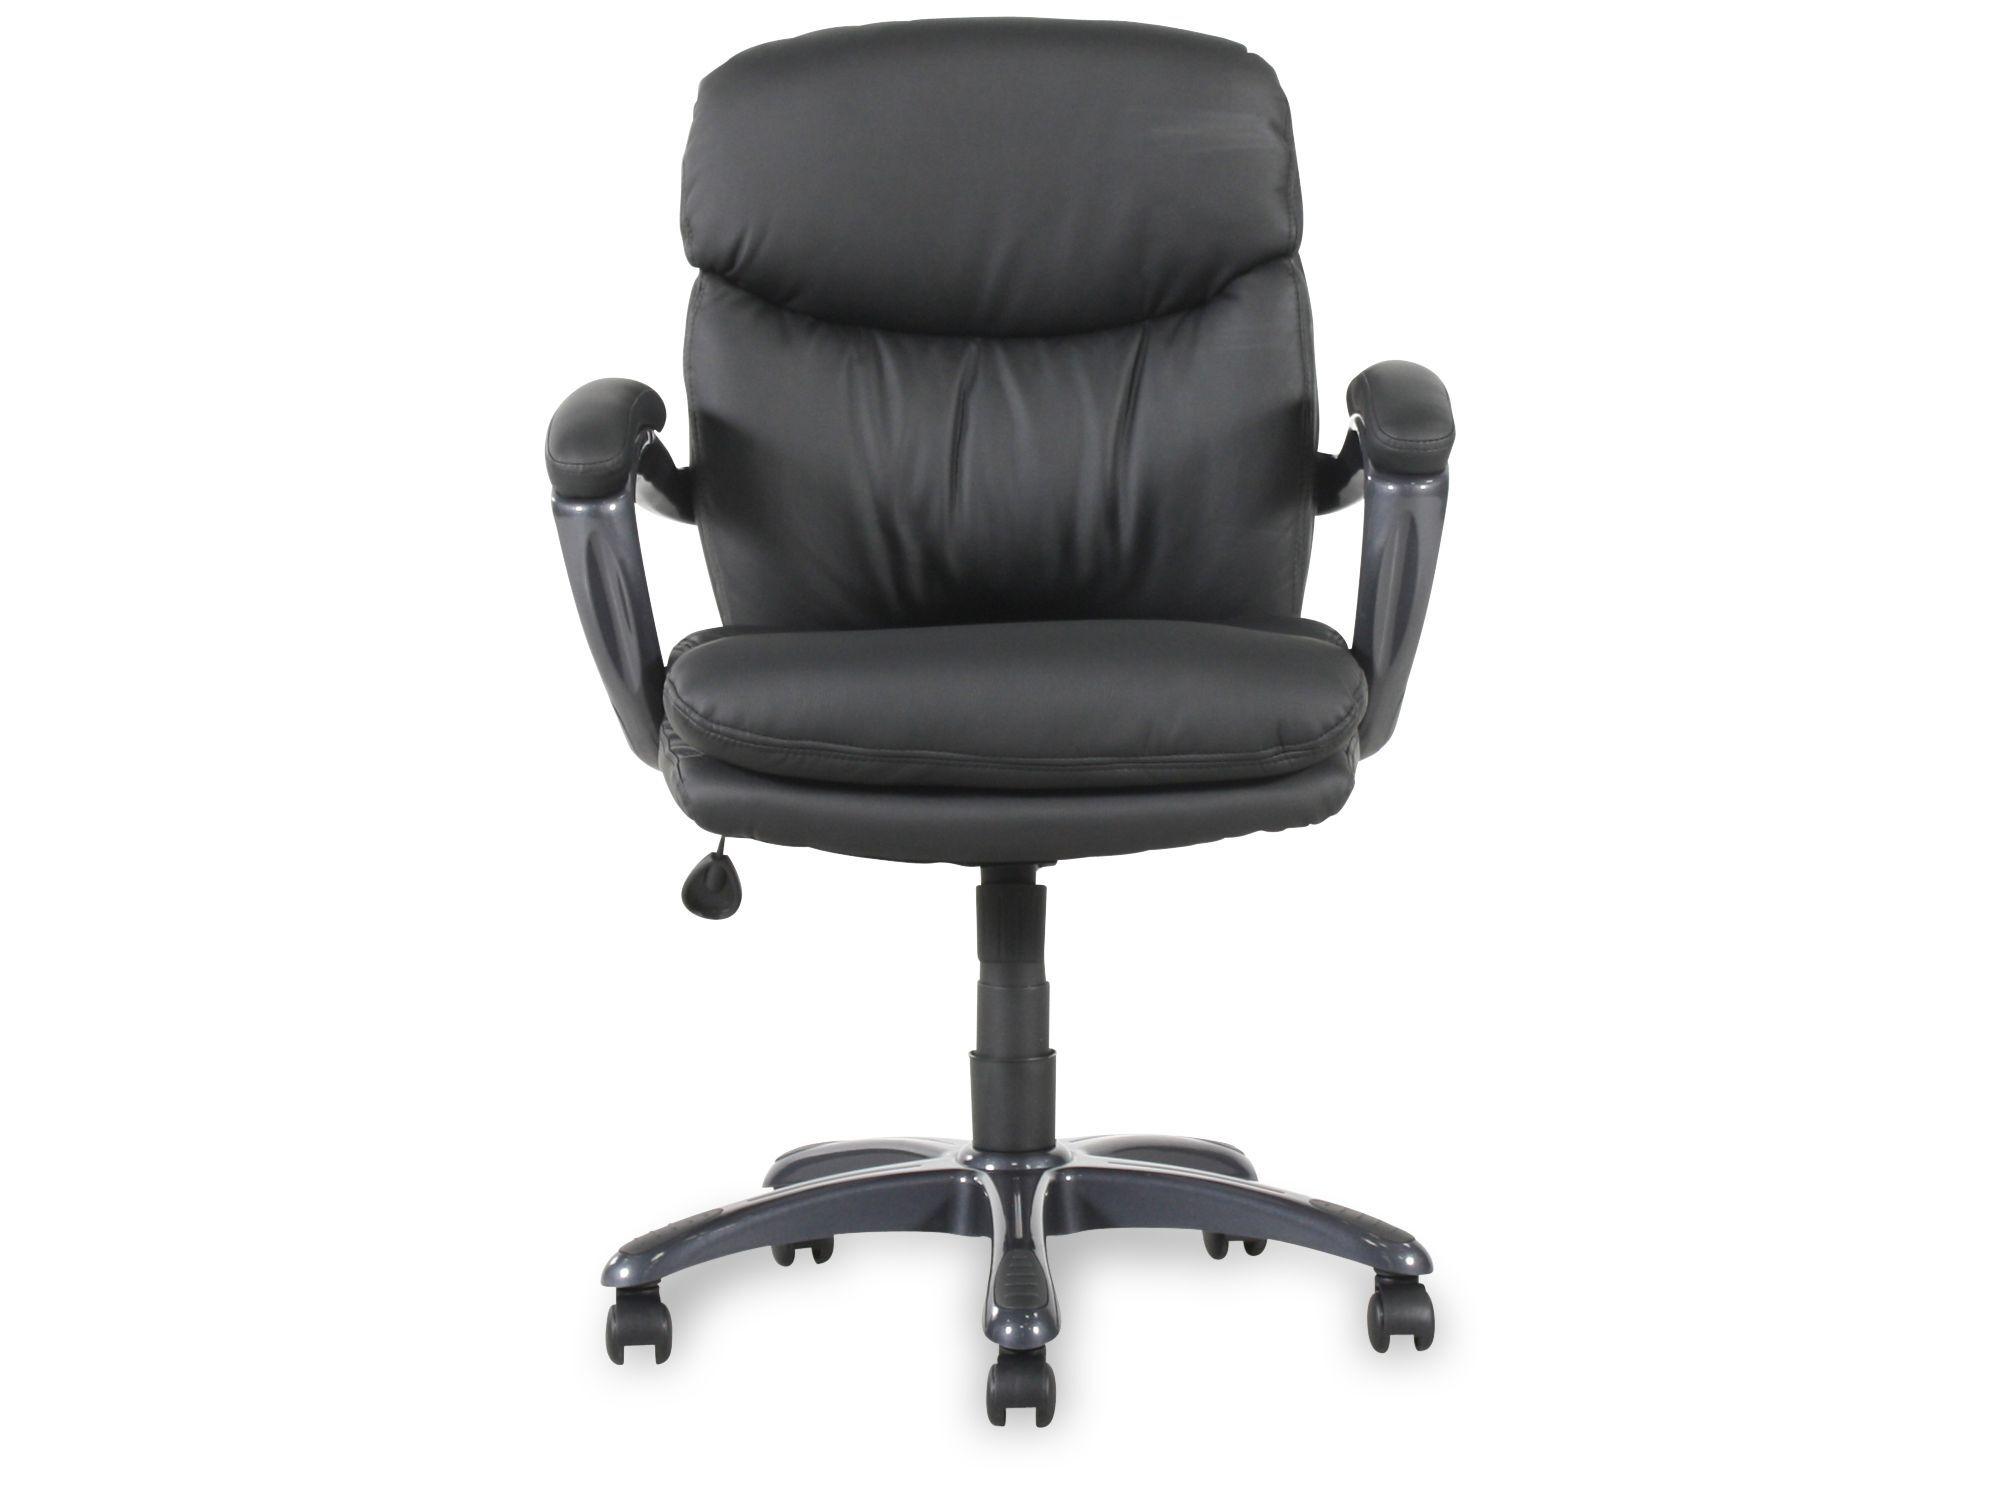 office chair armrest leather zero gravity canada padded swivel executive in black mathis